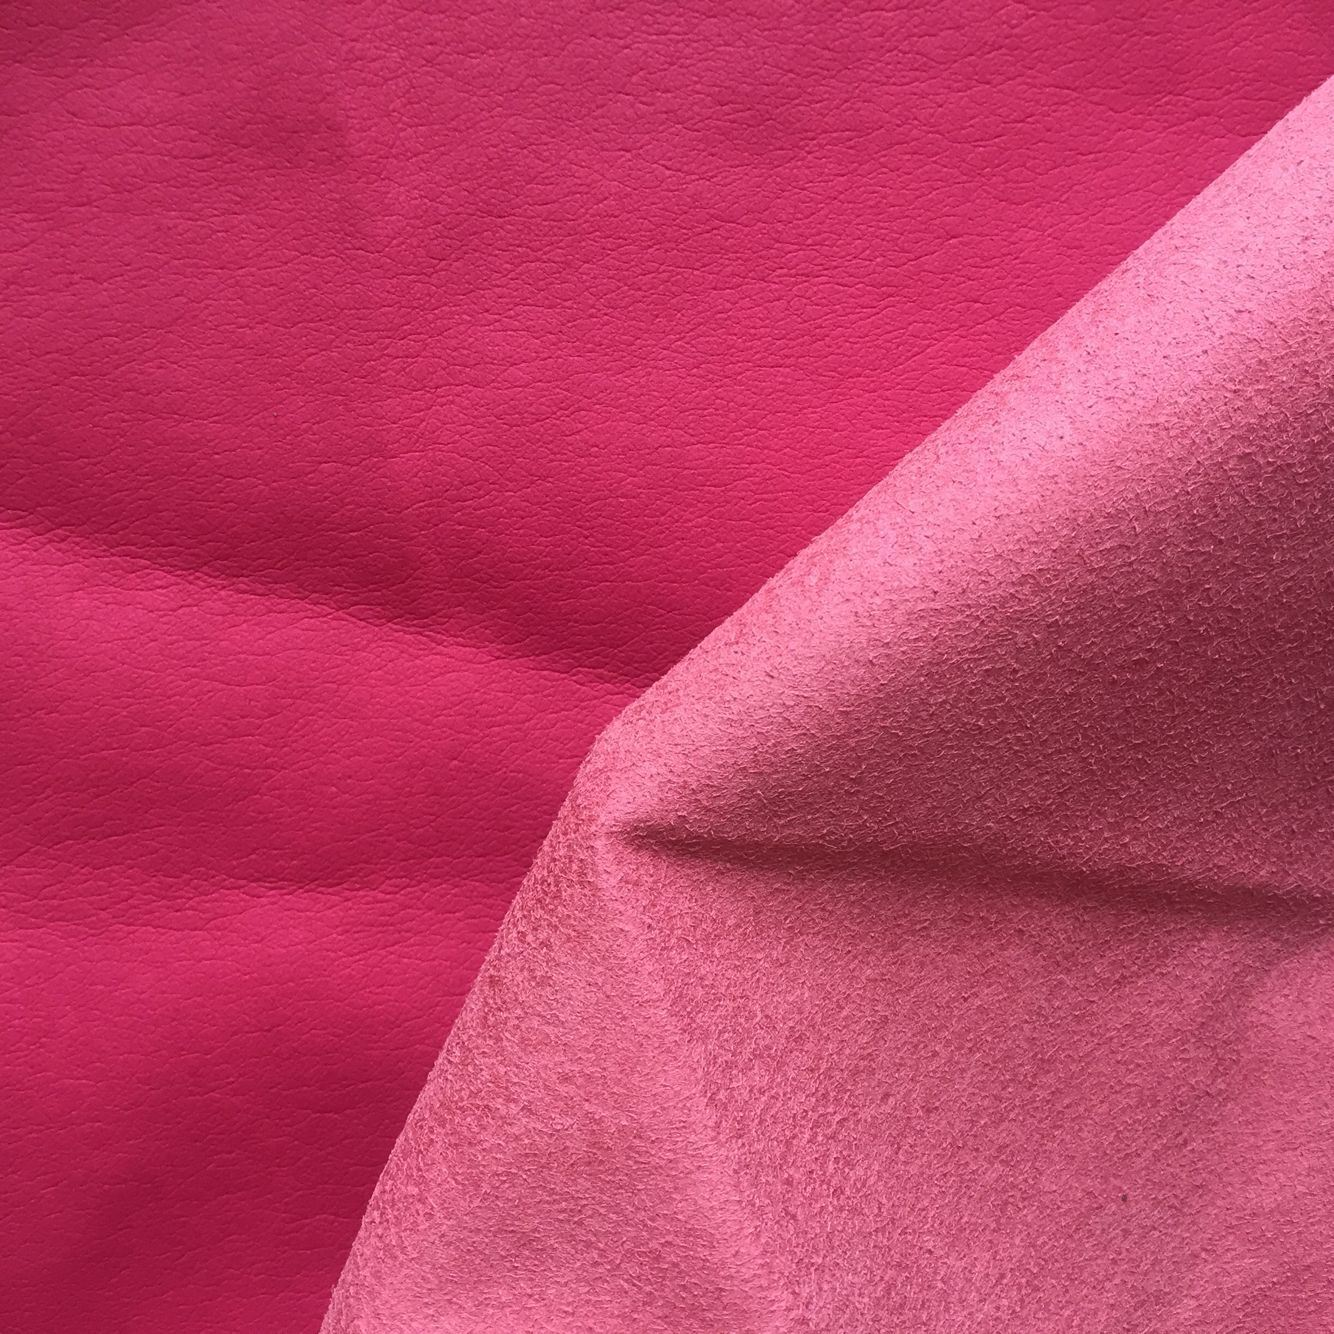 Antibacterial Breathable Microfiber Fabric for Shoes Lining HX-ML1701